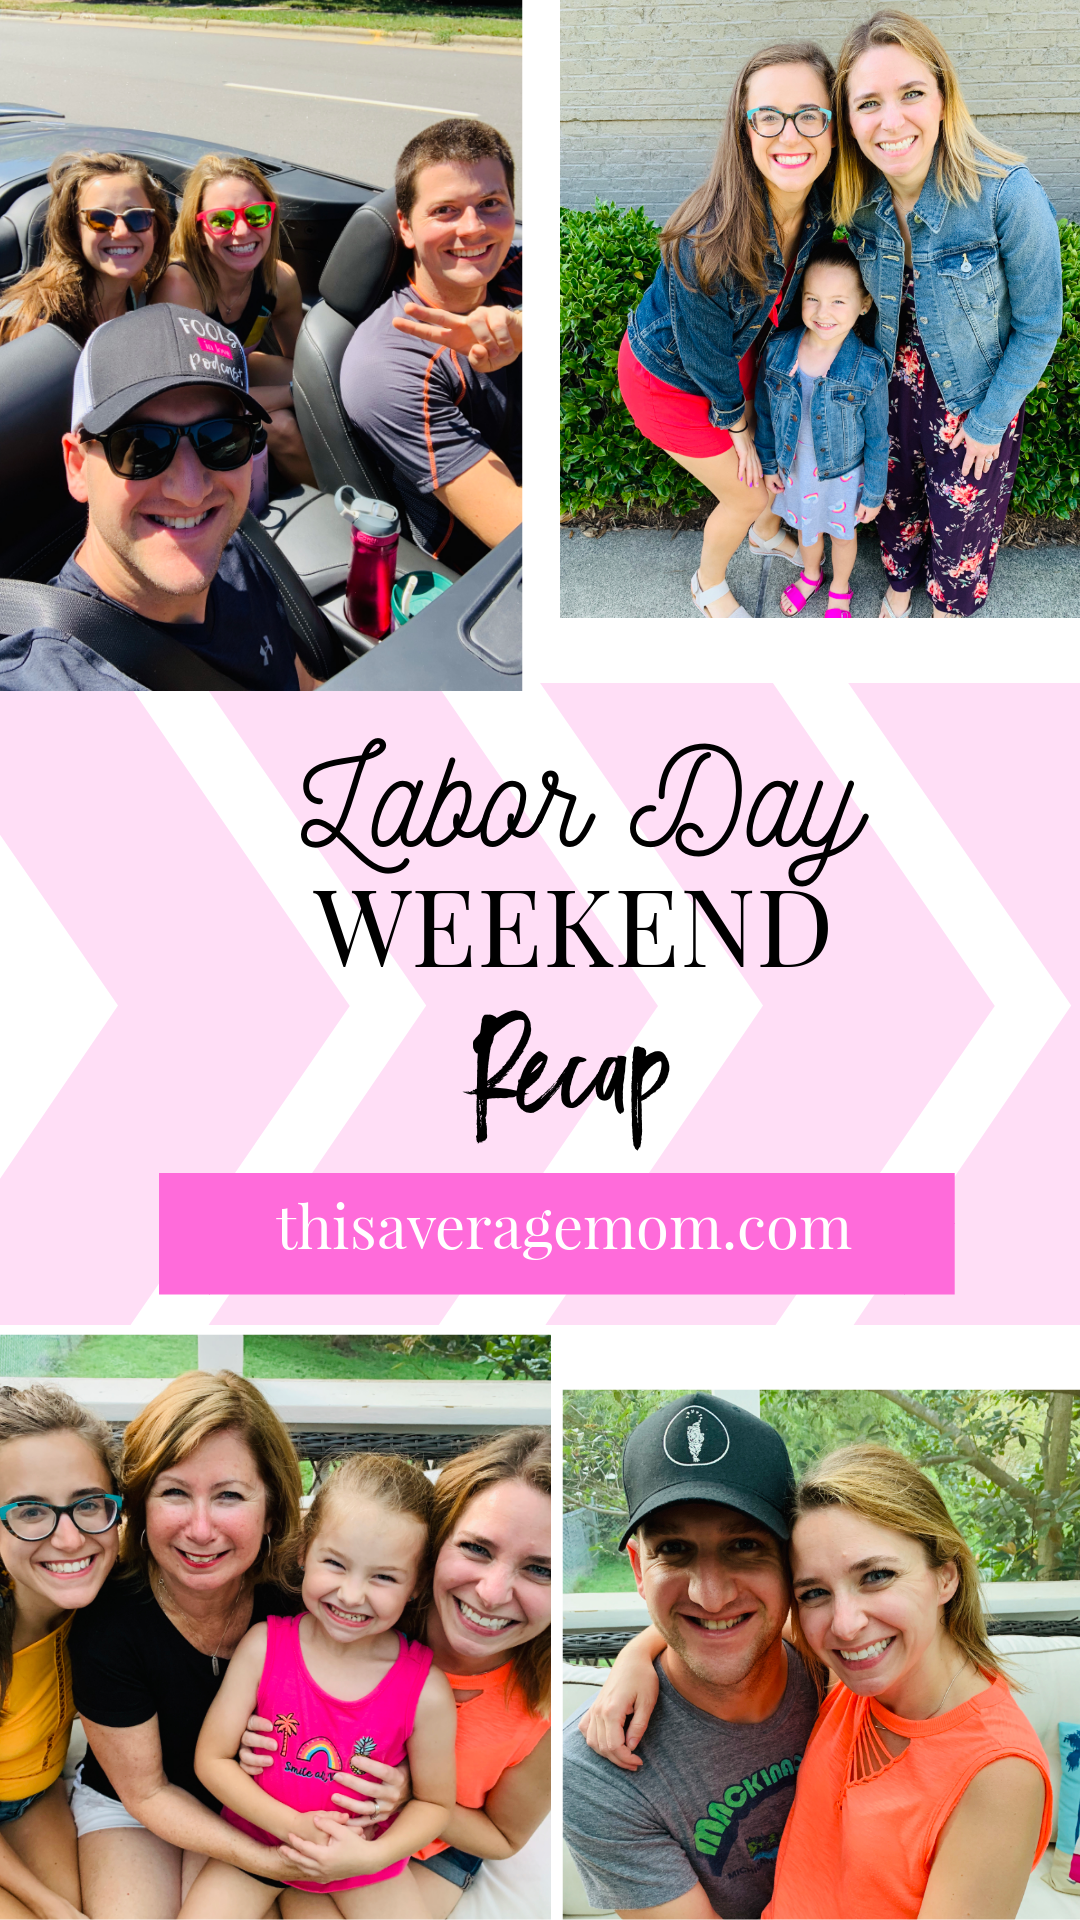 What does your family like to do on Labor Day?  We took the whole long weekend to relax and recharge! Recapping our weekend on the blog.